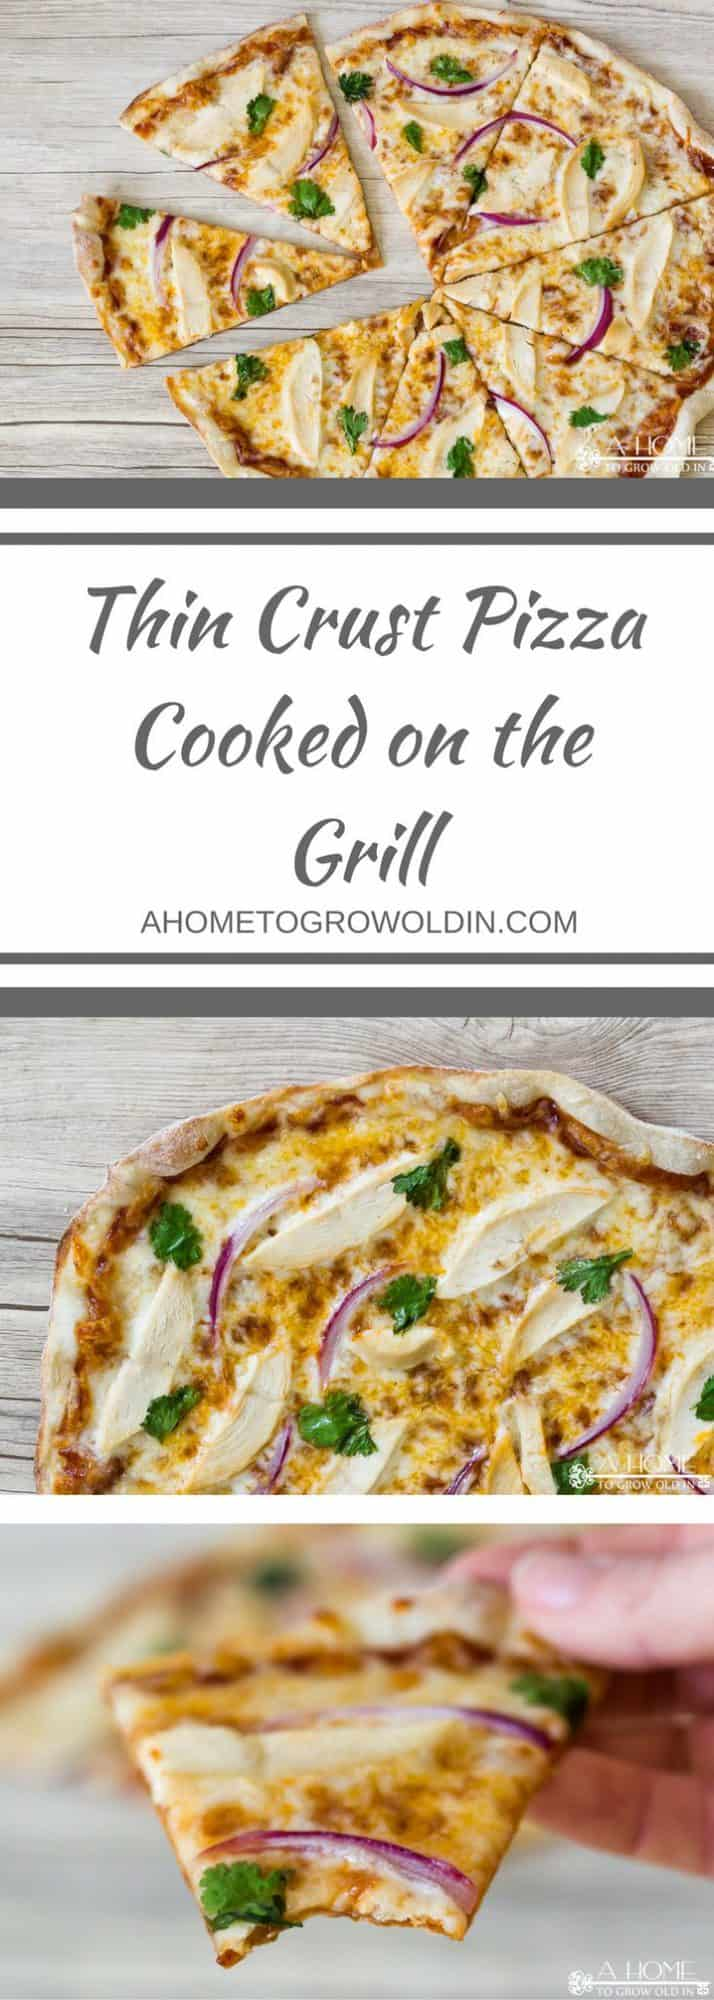 Grilling is a great way to make a pizza that tastes just like it's out of a brick oven! If you like thin crust pizza, you can't get any thinner than this!